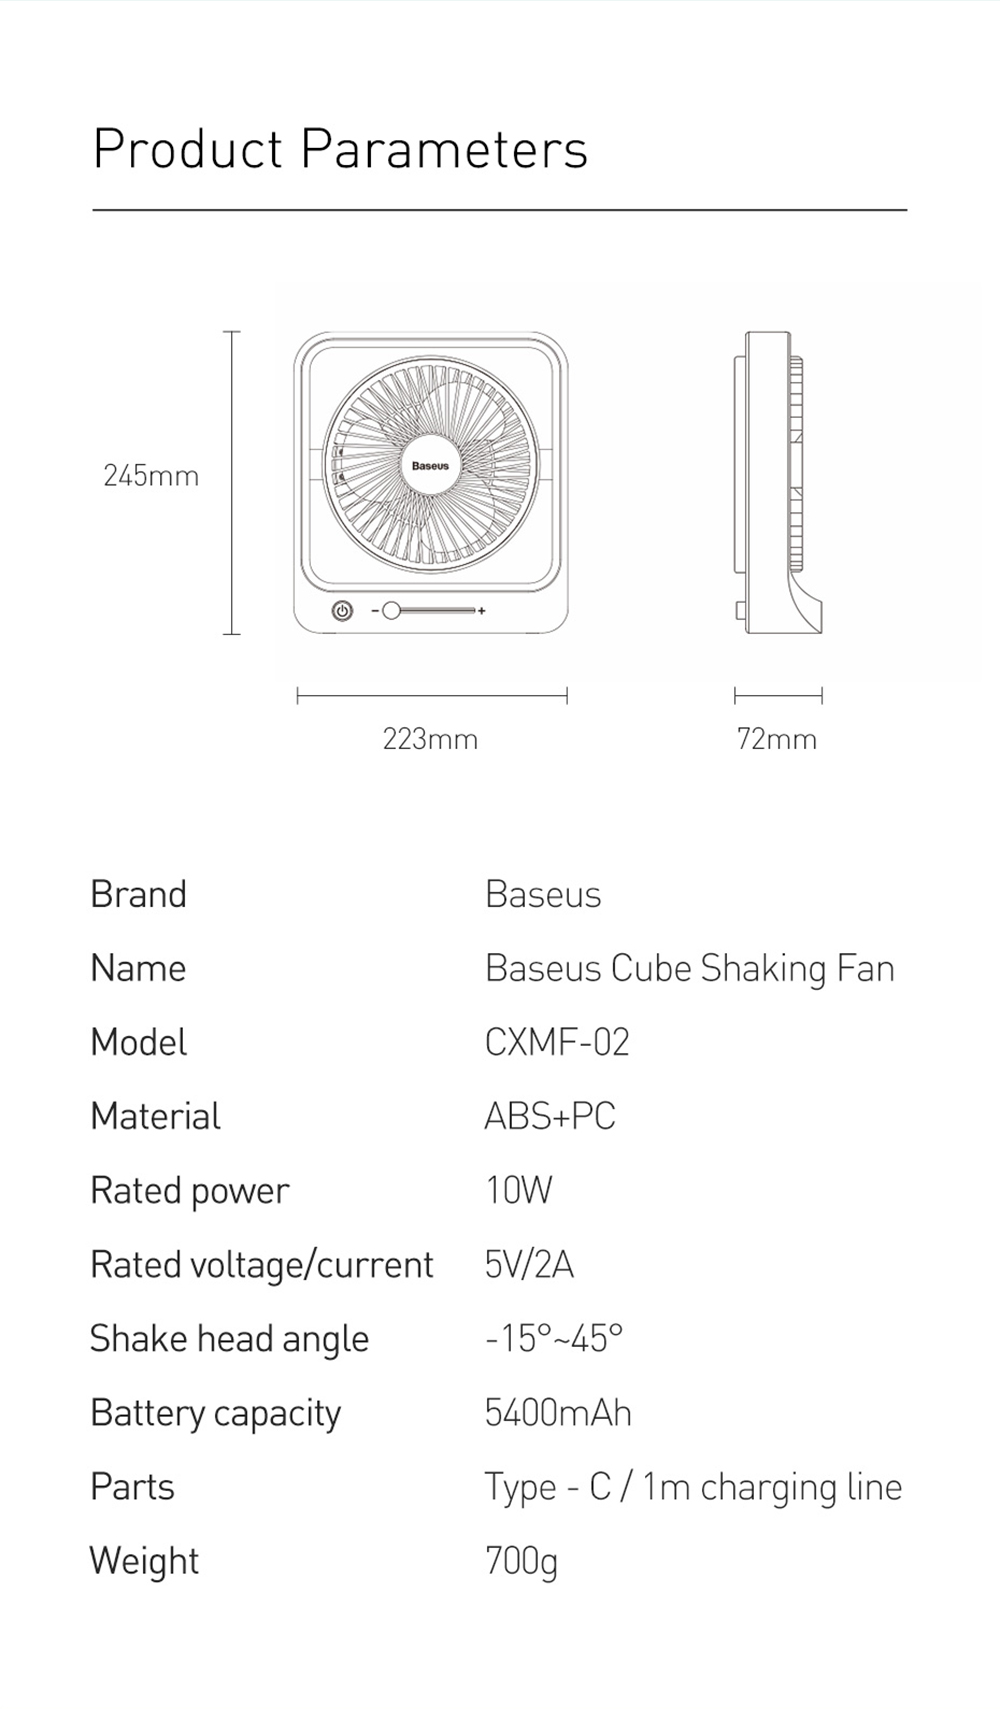 Baseus CXMF-02 Desktop Fan Parameters